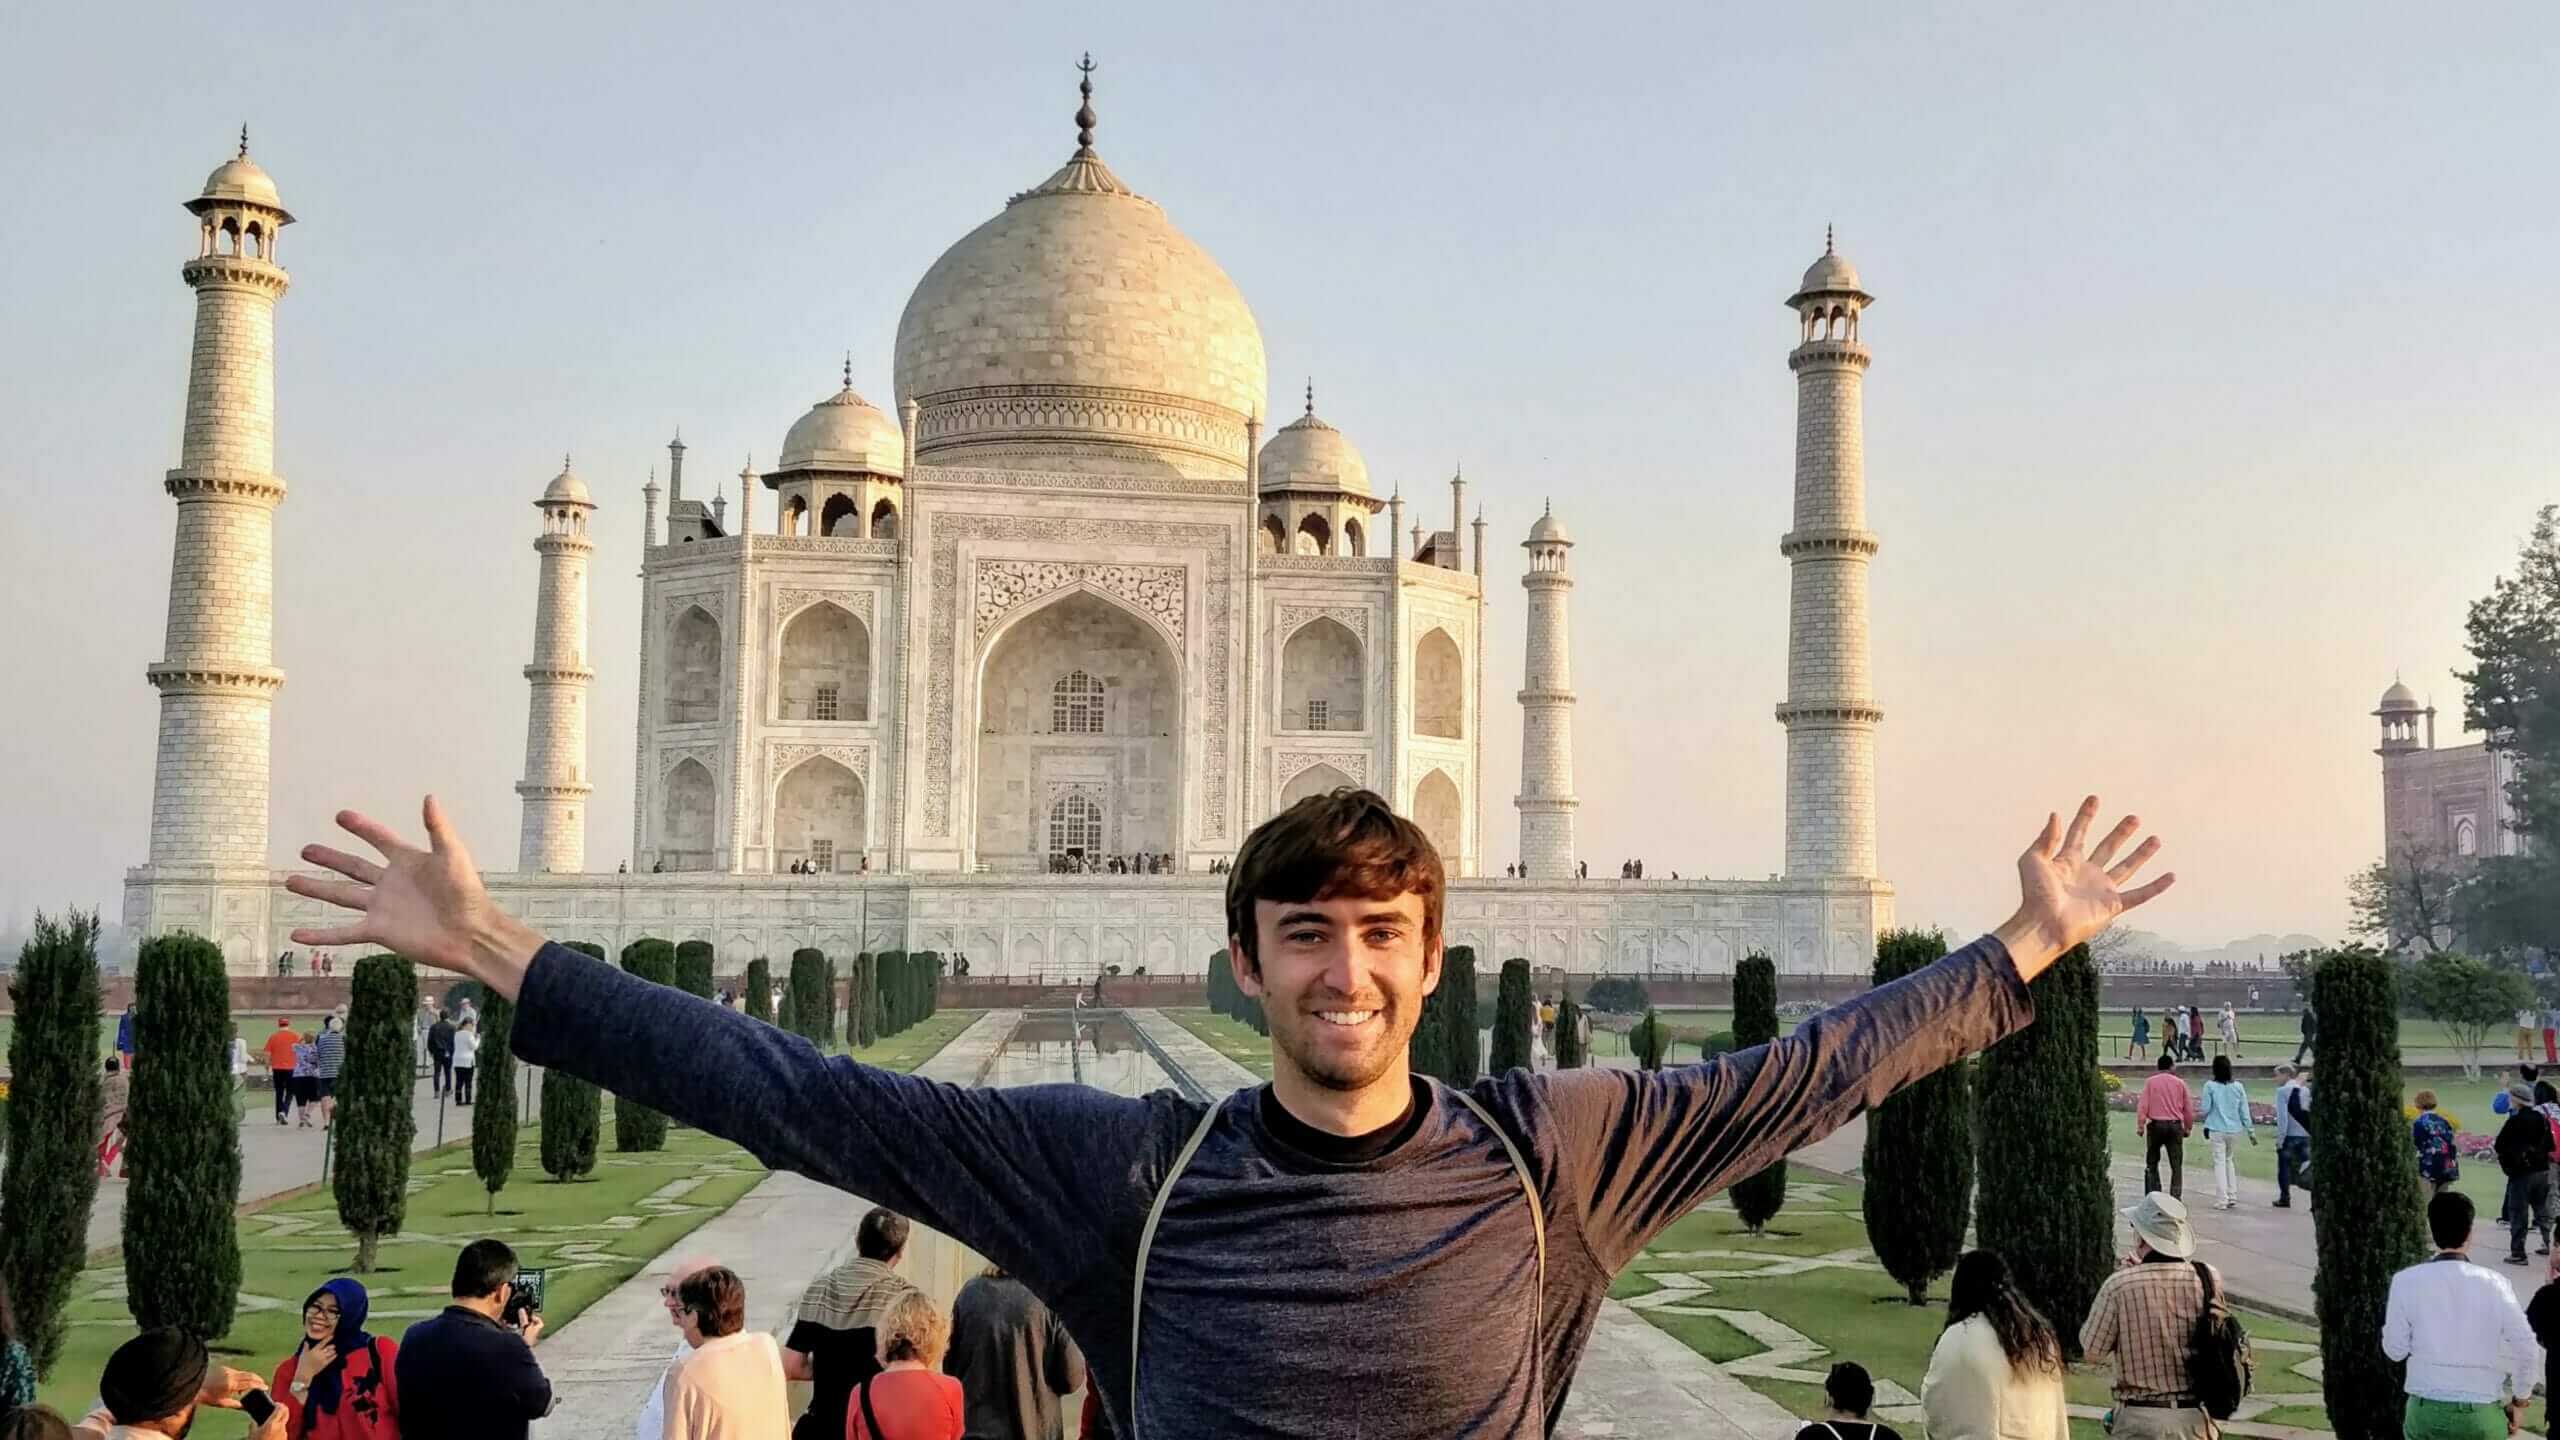 A backpacking India wouldn't be complete without seeing the Taj Mahal in Agra